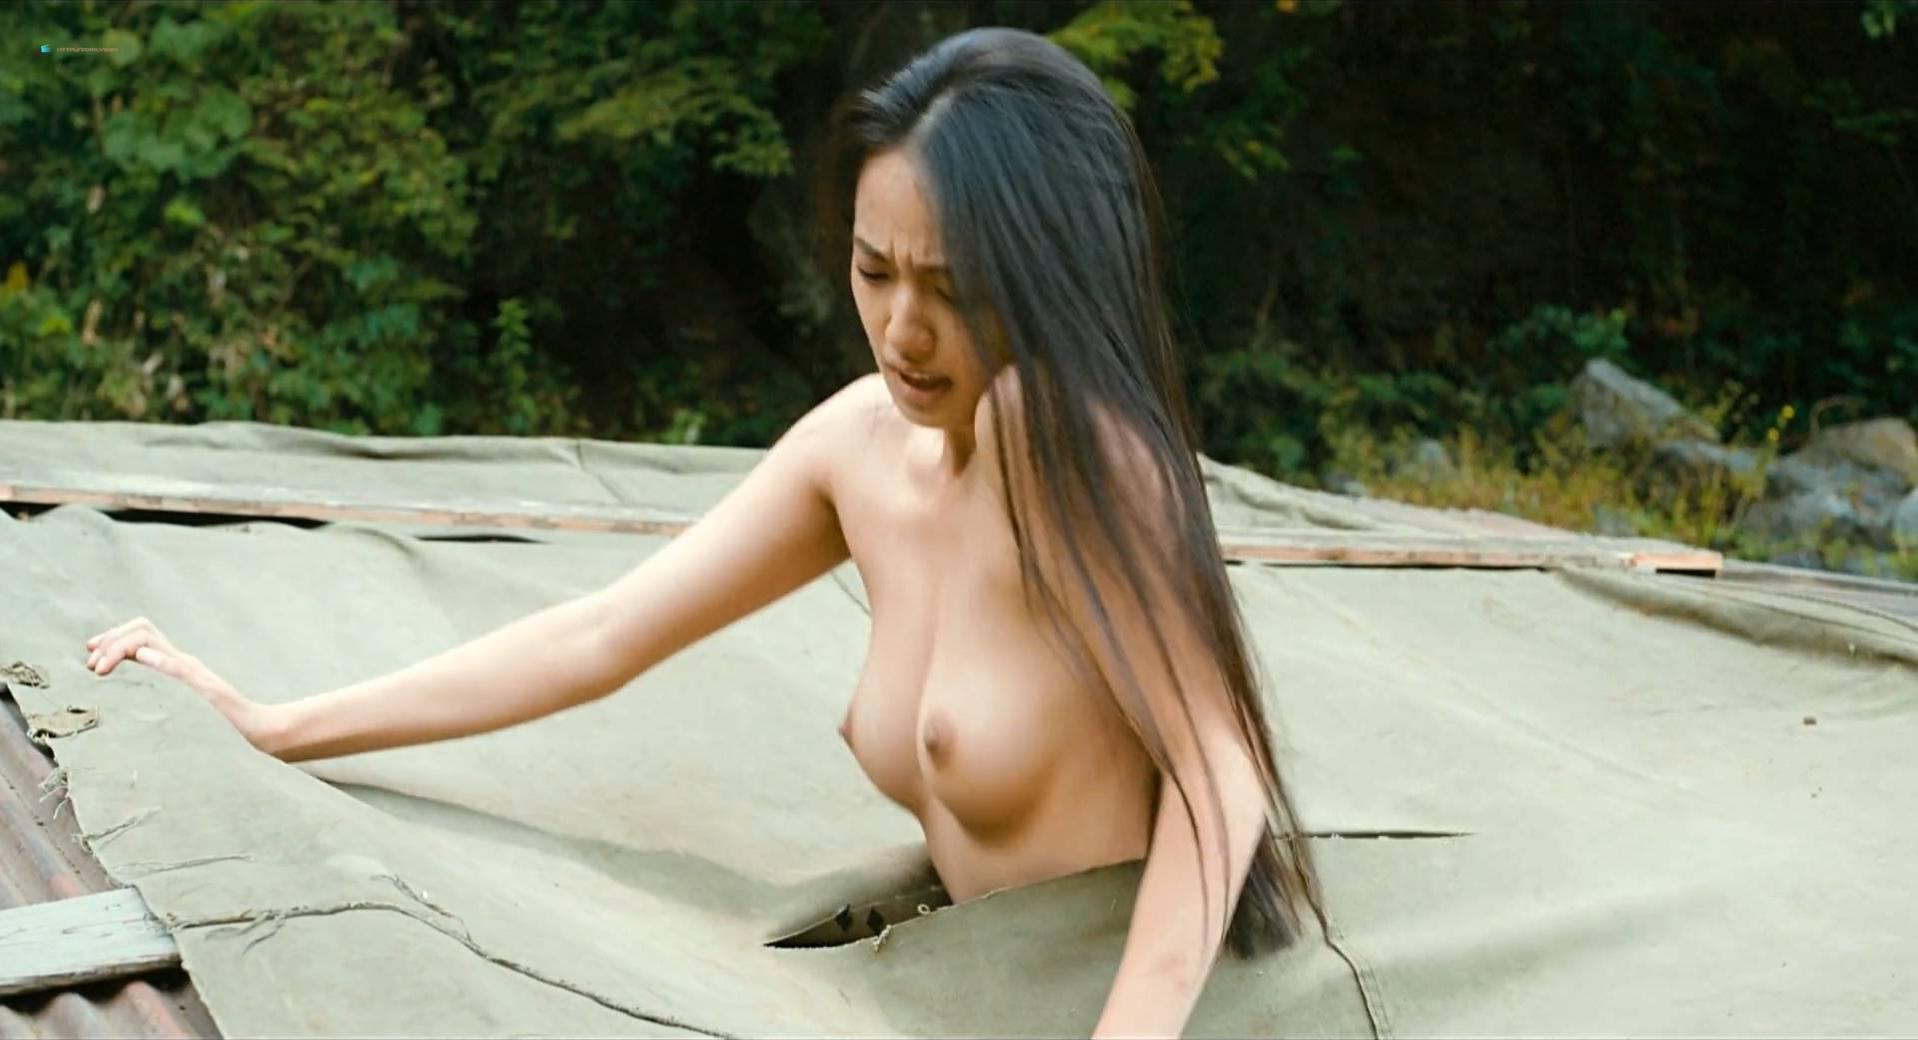 Yuki Mamiya nude, Michiho Suzuki nude - Wet Woman in the Wind (2016)